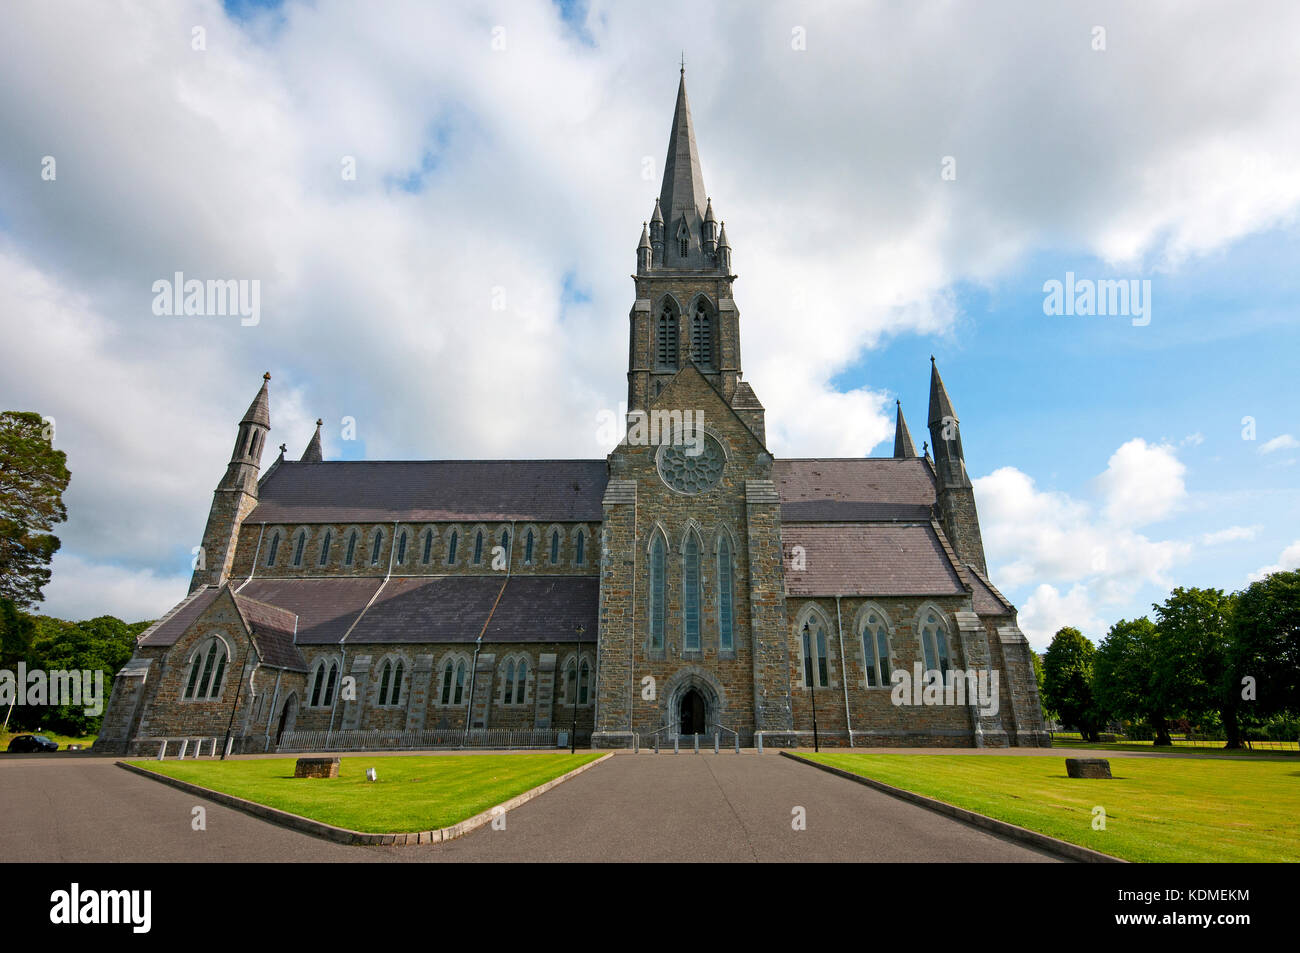 St Mary's Cathedral (1842-1855 by architect Augustus Welby Northmore Pugin), County Kerry, Killarney, Ireland - Stock Image